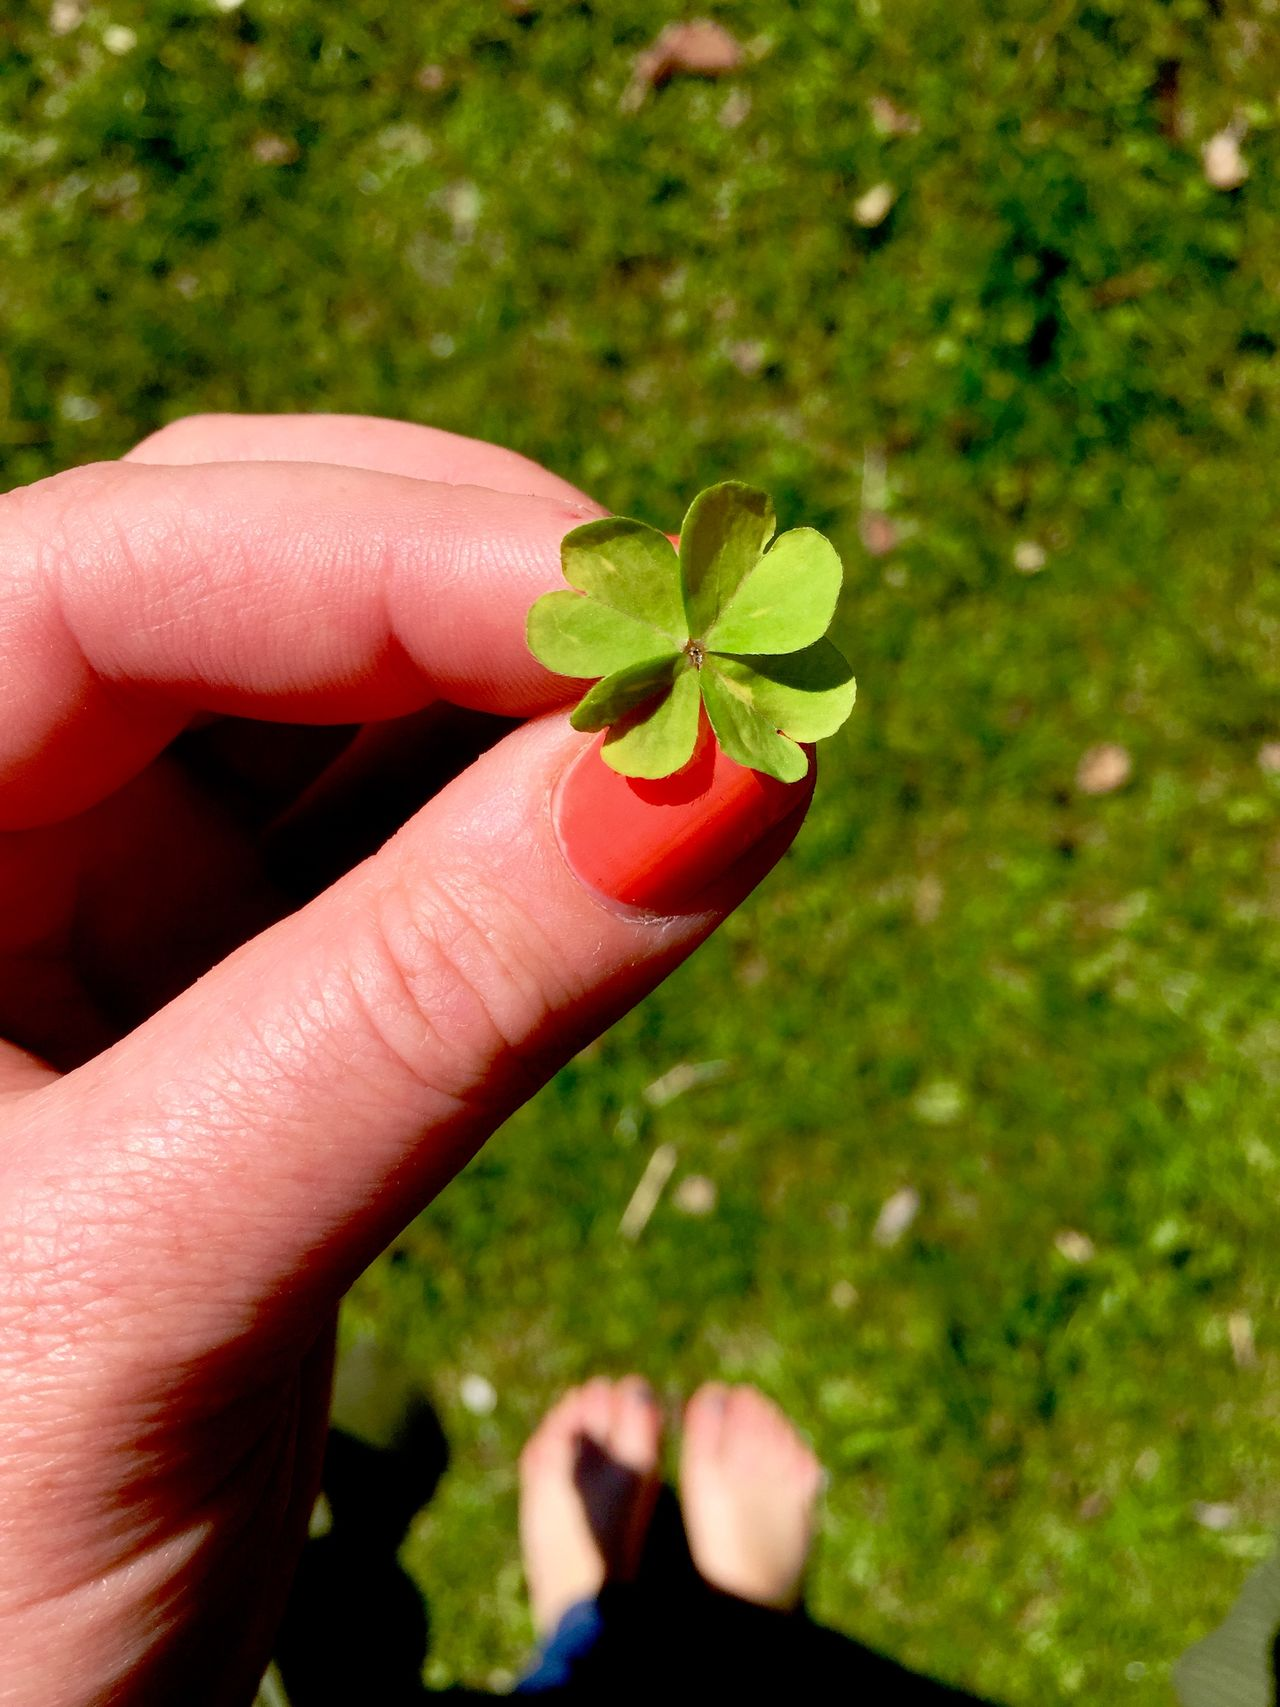 Beauty In Nature Close-up Clover Day Four Leaf Clover Fragility Freshness Good Luck Charm Grass Growth Holding Hope Human Body Part Human Finger Human Hand Leaf Luck Lucky Nature One Person Outdoors People Plant Real People Women